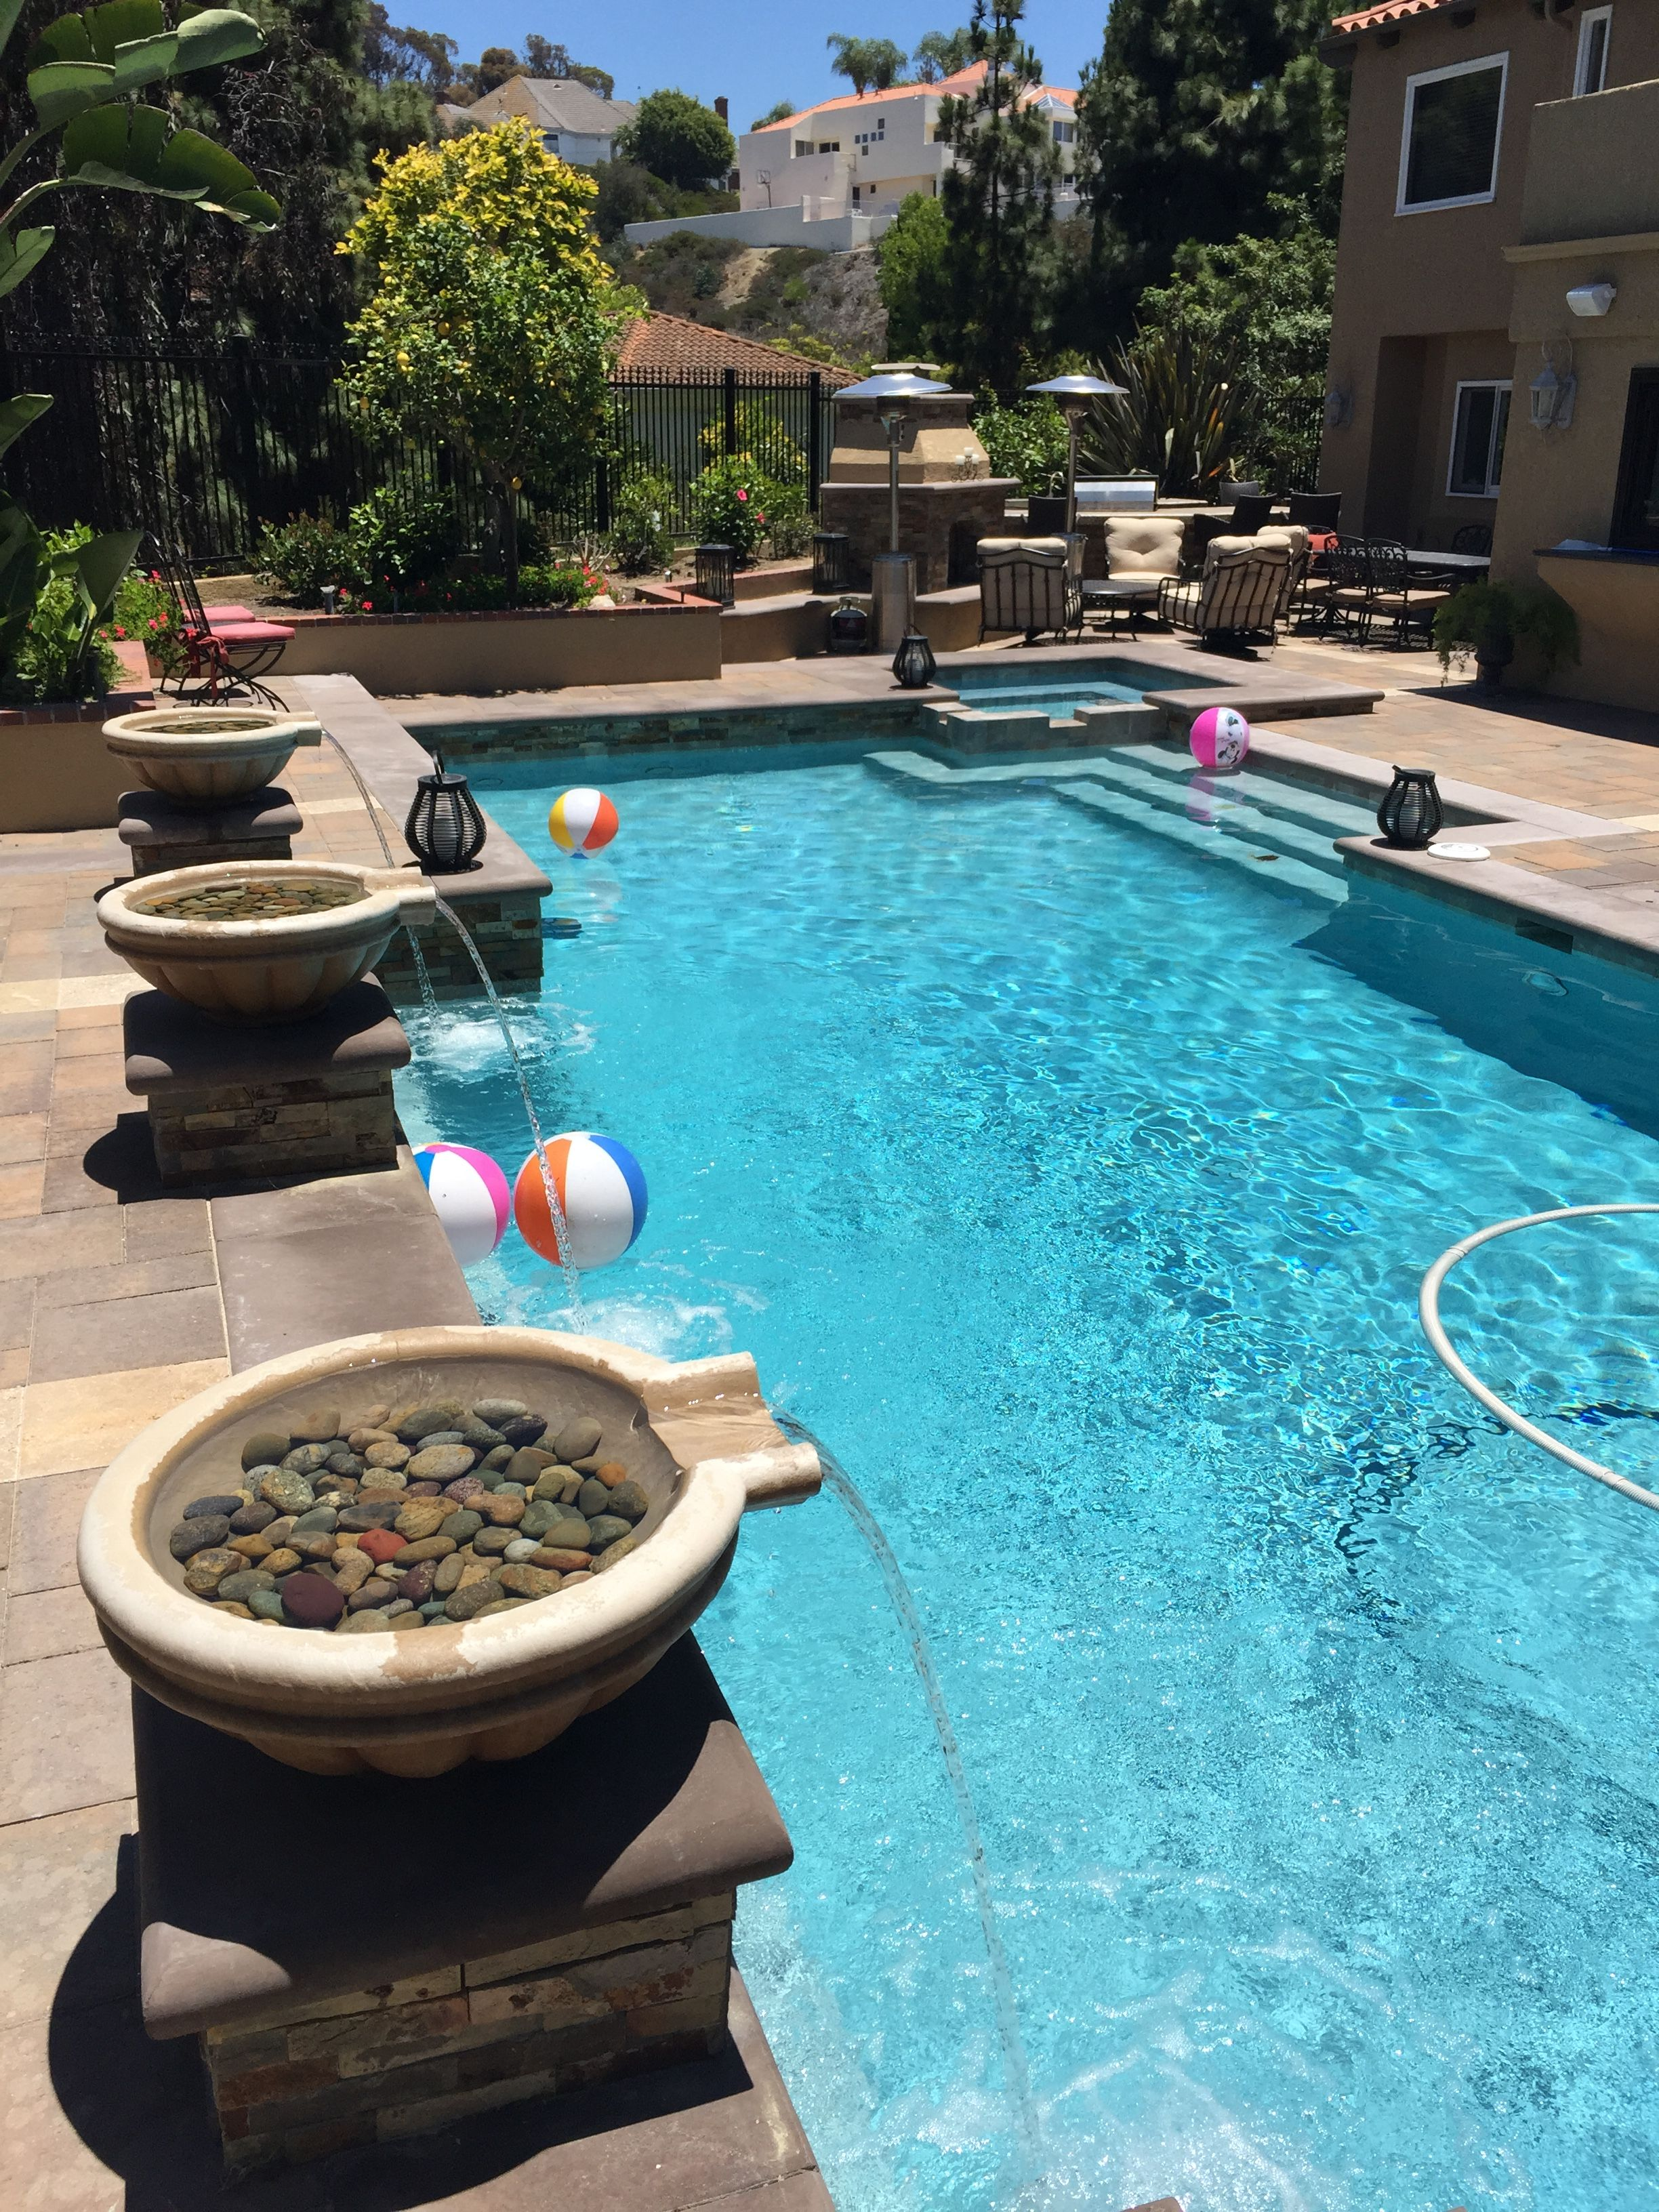 Remodeled Pebble Tech Pool Pavers With Integrated Spa Added Stacked Stone Cement Coping Built In Table Wit Pool Fountain Backyard Pool Designs Backyard Pool